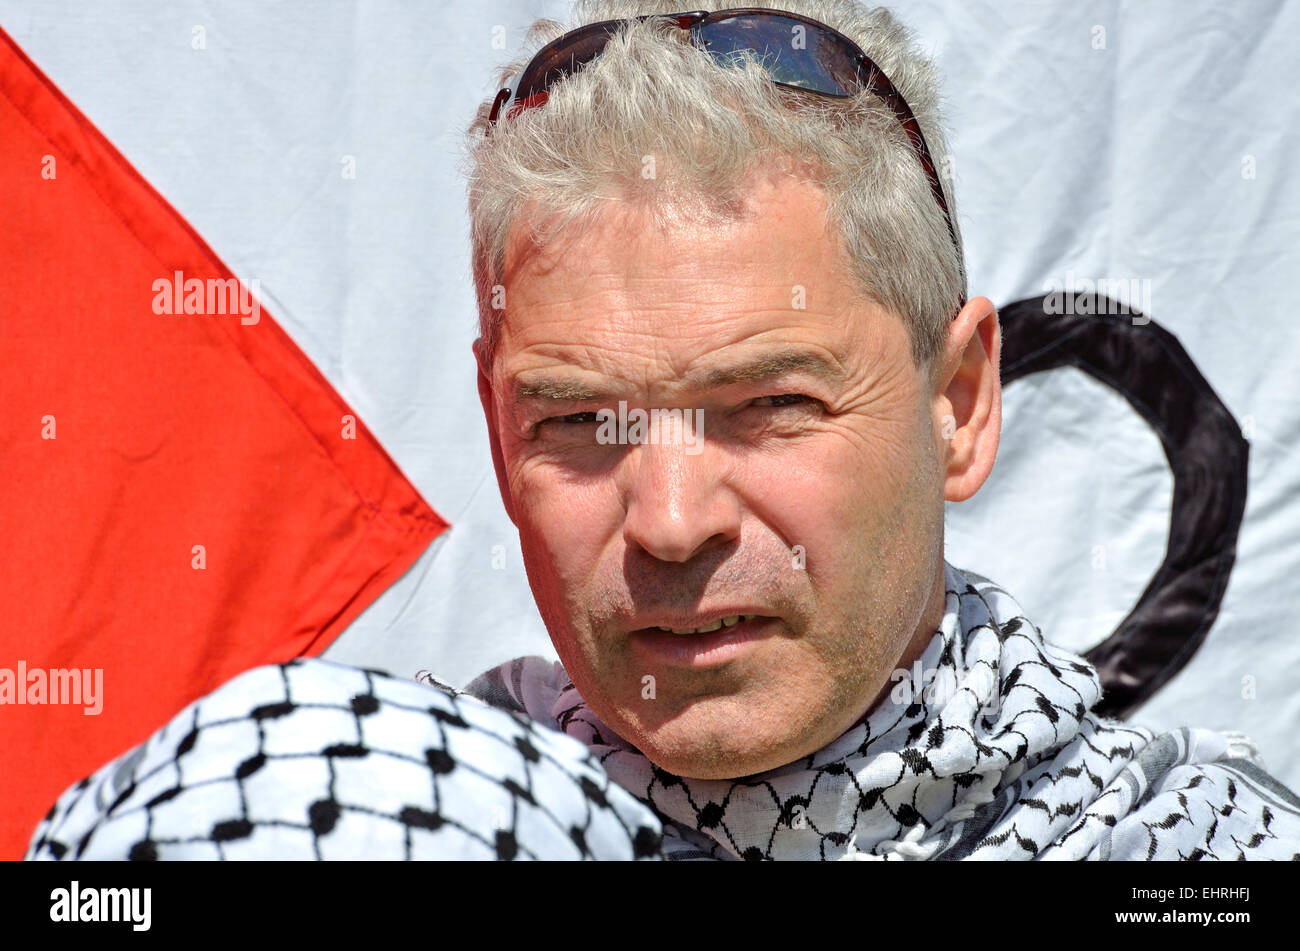 John Hilary, Executive Director of War on Want, at the March for Gaza, London, 2014 - Stock Image